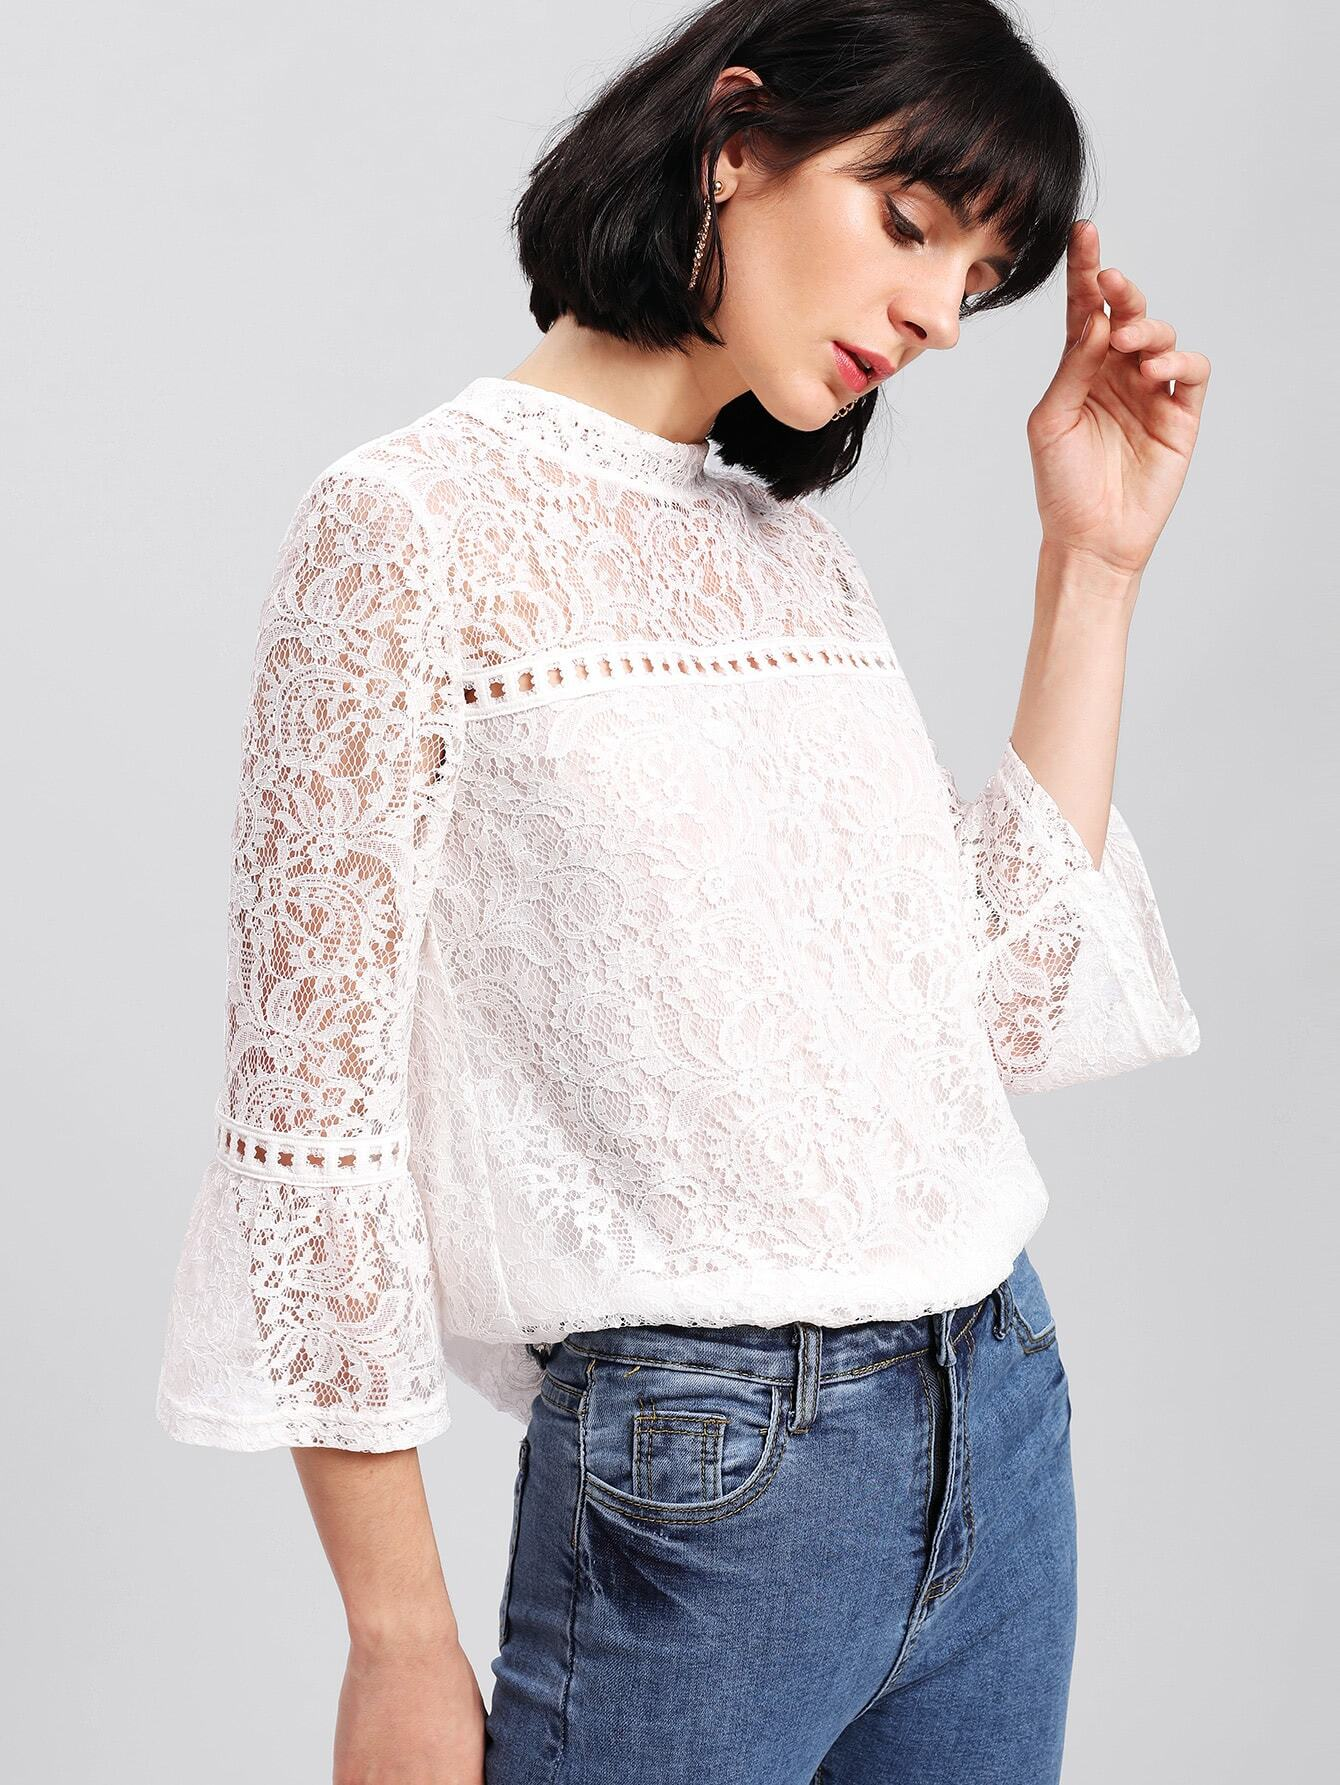 Hollow Cut Detail Floral Lace Top pearl detail layered frill sleeve top